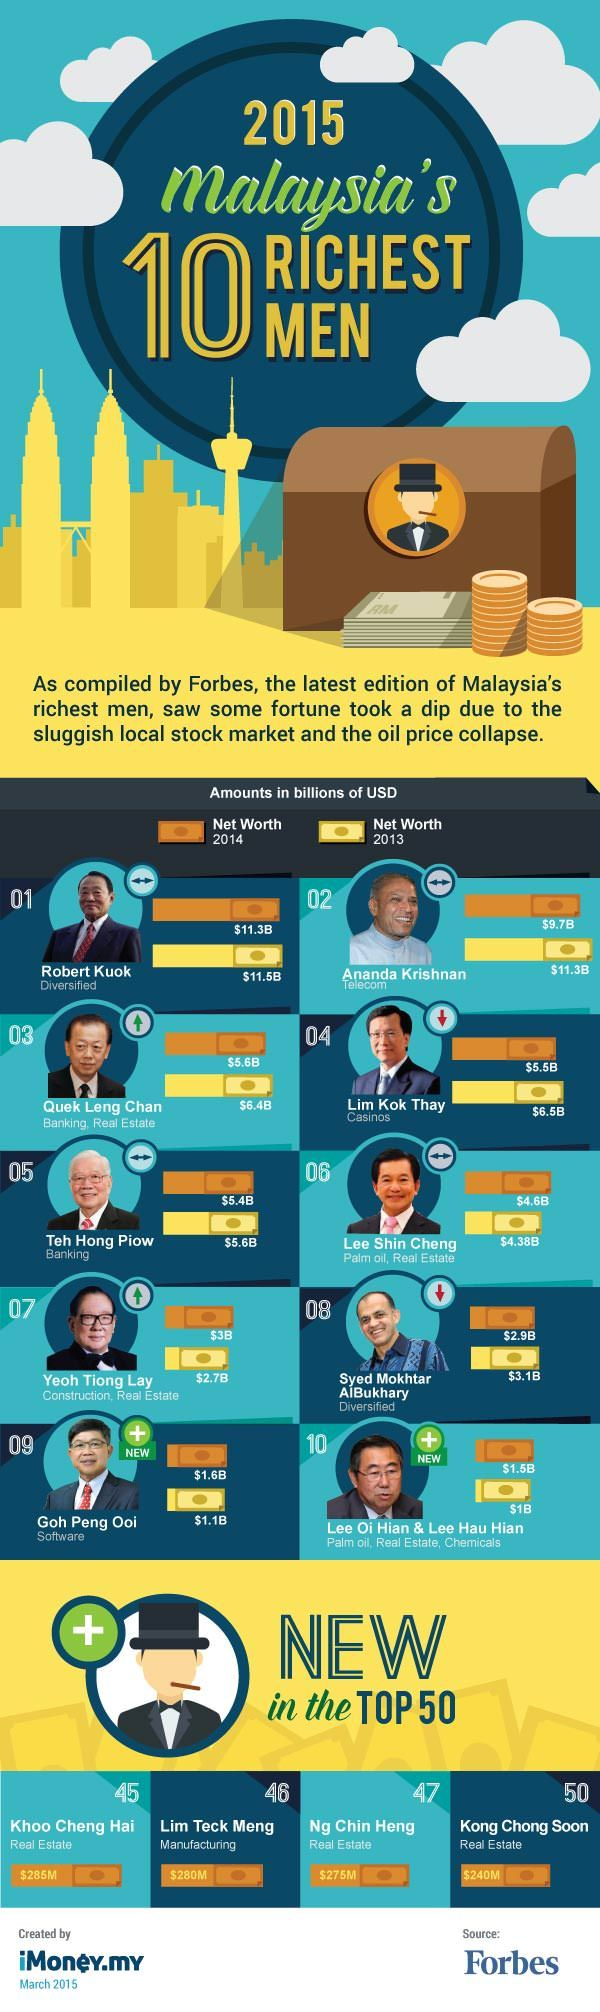 Top 10 Richest Men In Malaysia 2015 [Infographic].all